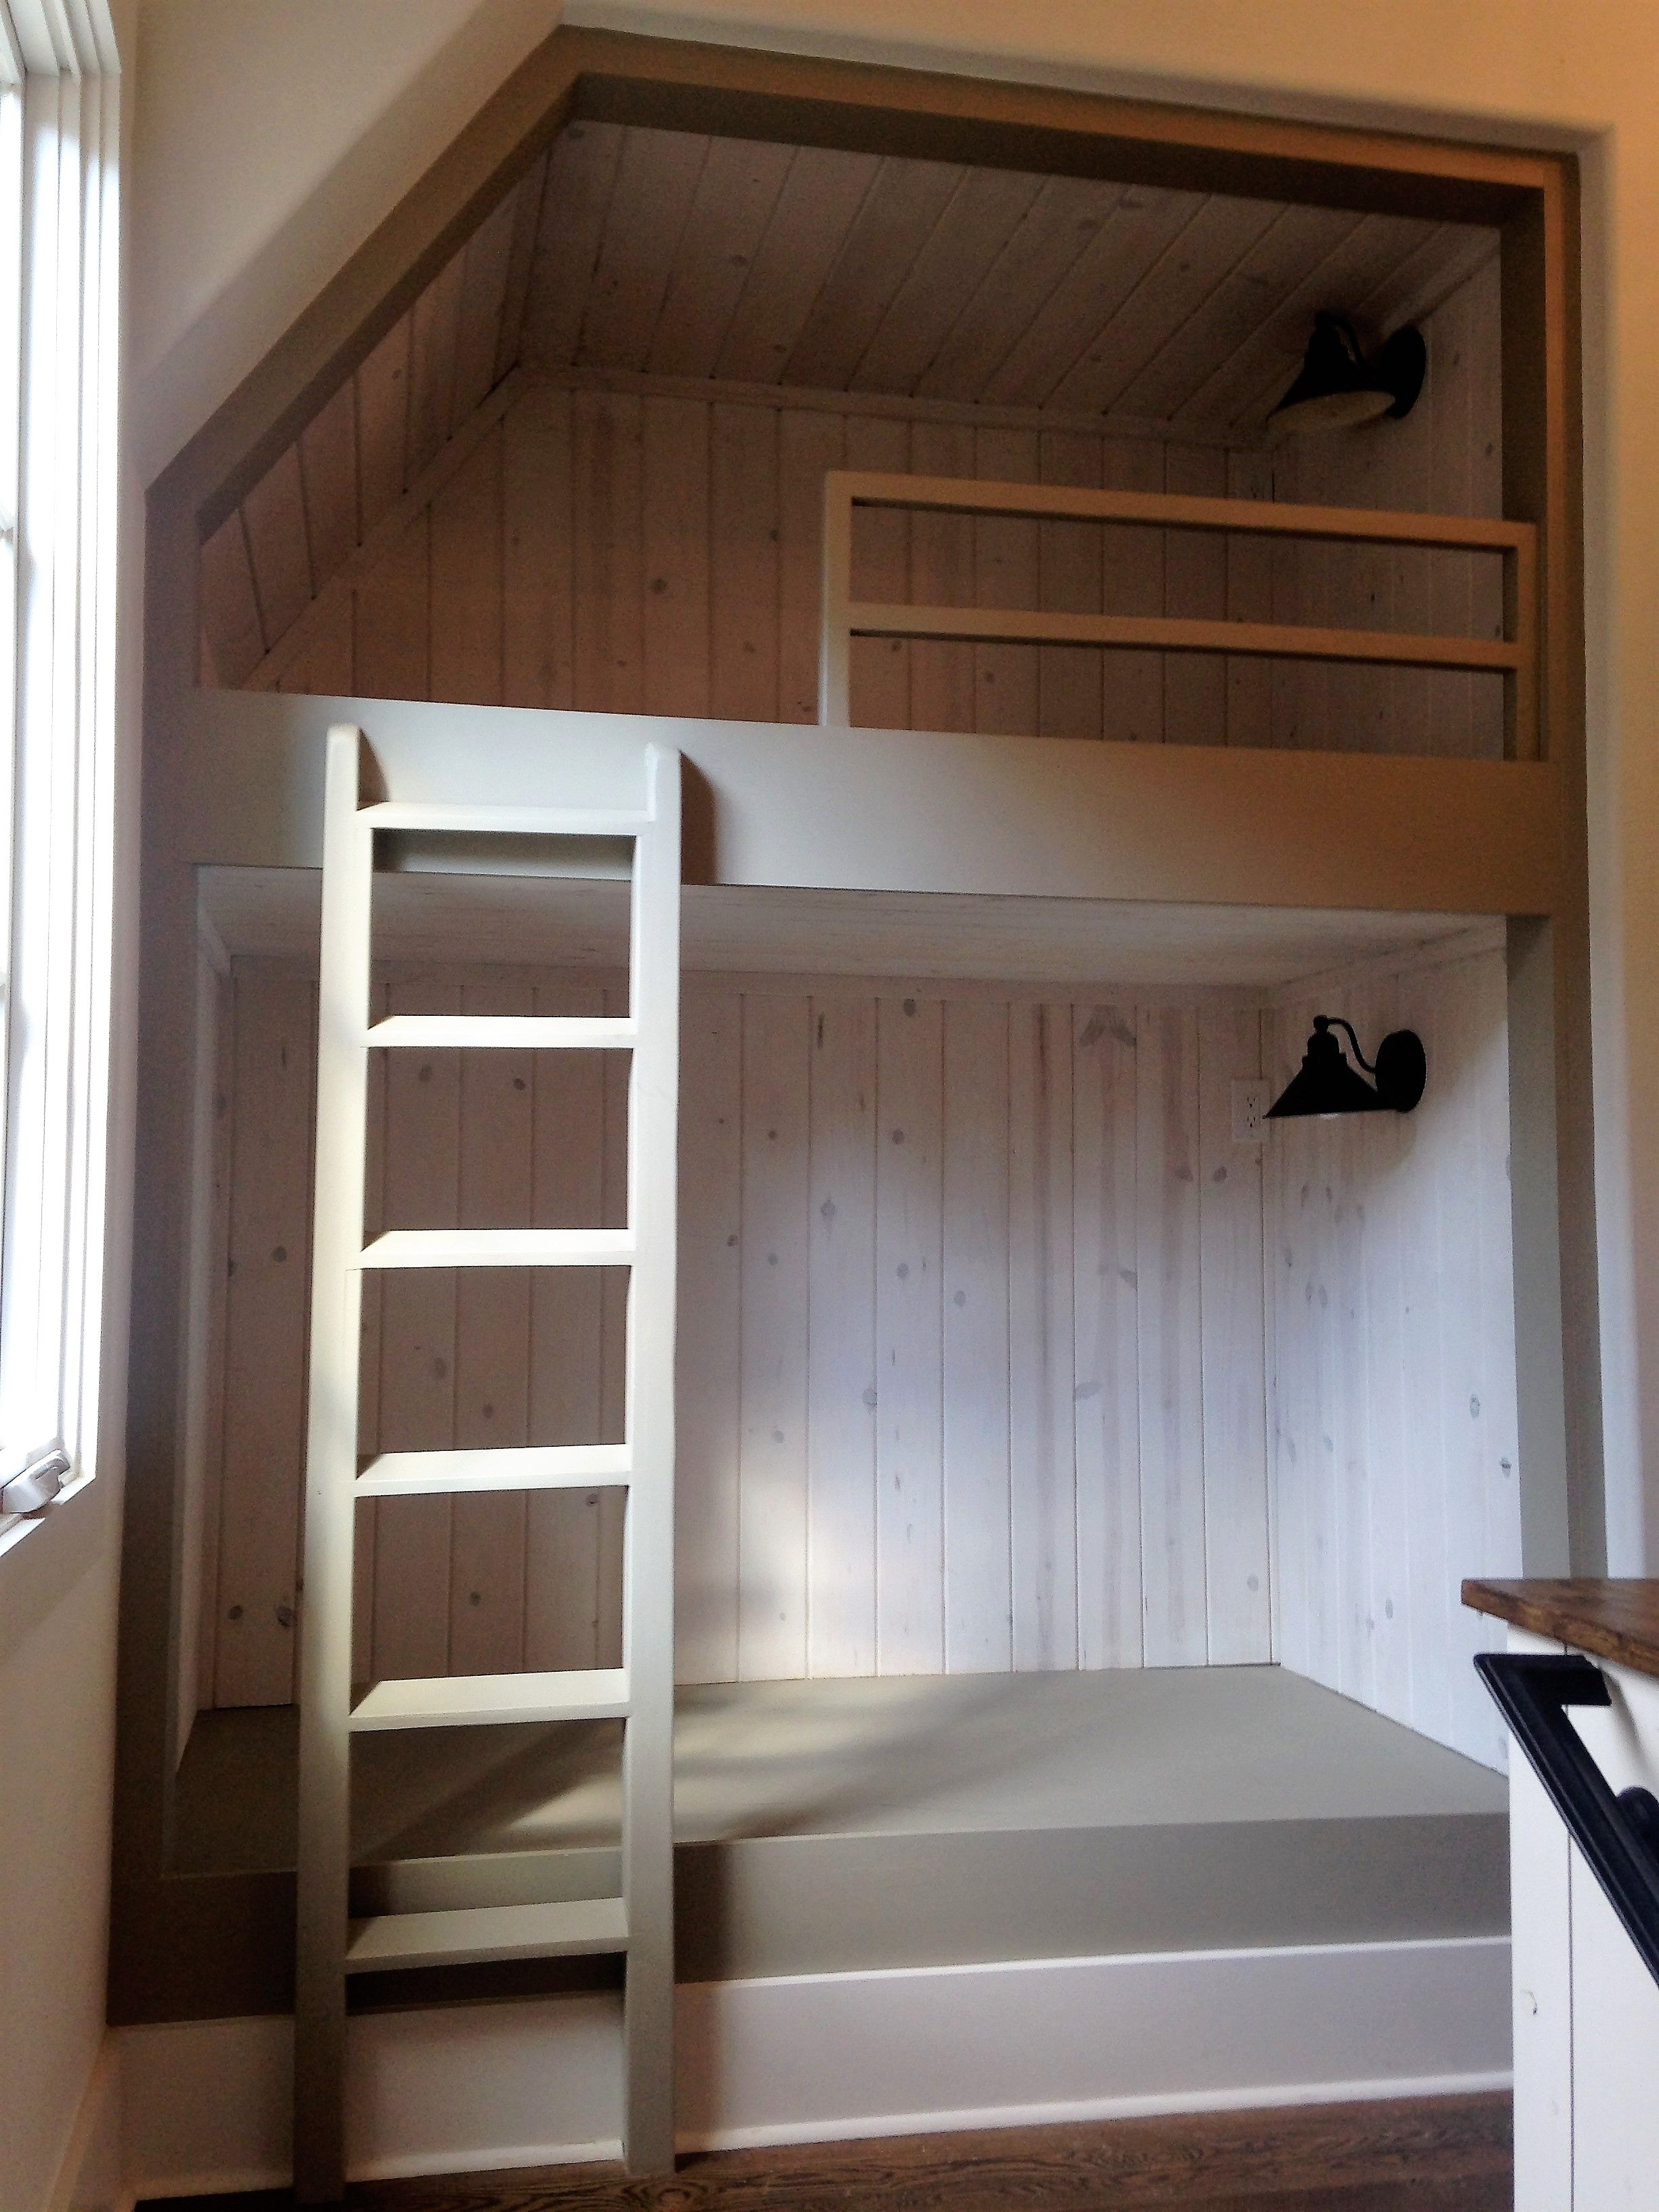 At the top of the stairs is a built in bunk bed. Perfect